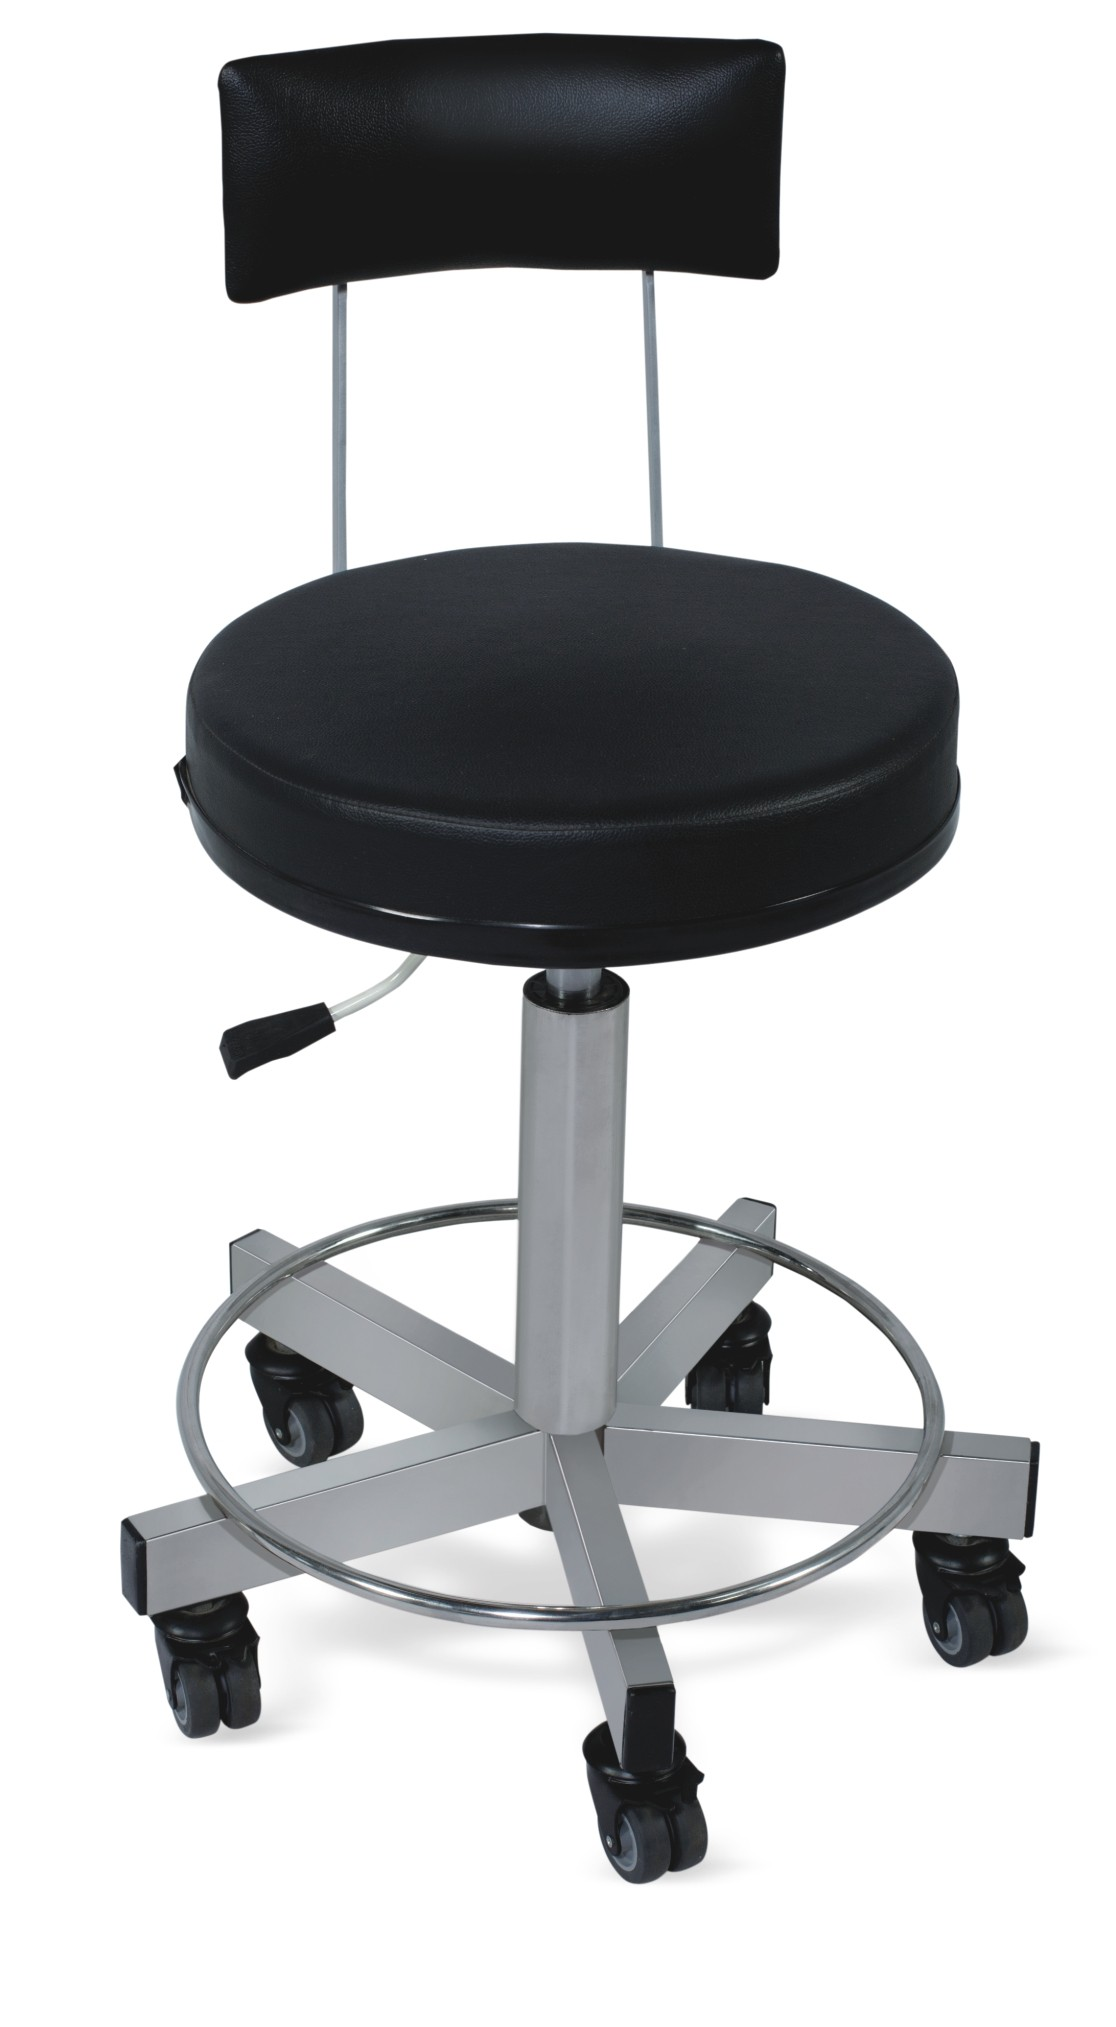 Revolving Stool With Cushioned Seat And Back   SS Framework (Height On Gas  Spring)   Instrument Trolleys And Revolving Stools   OT U0026 ICU SOLUTIONS    ...